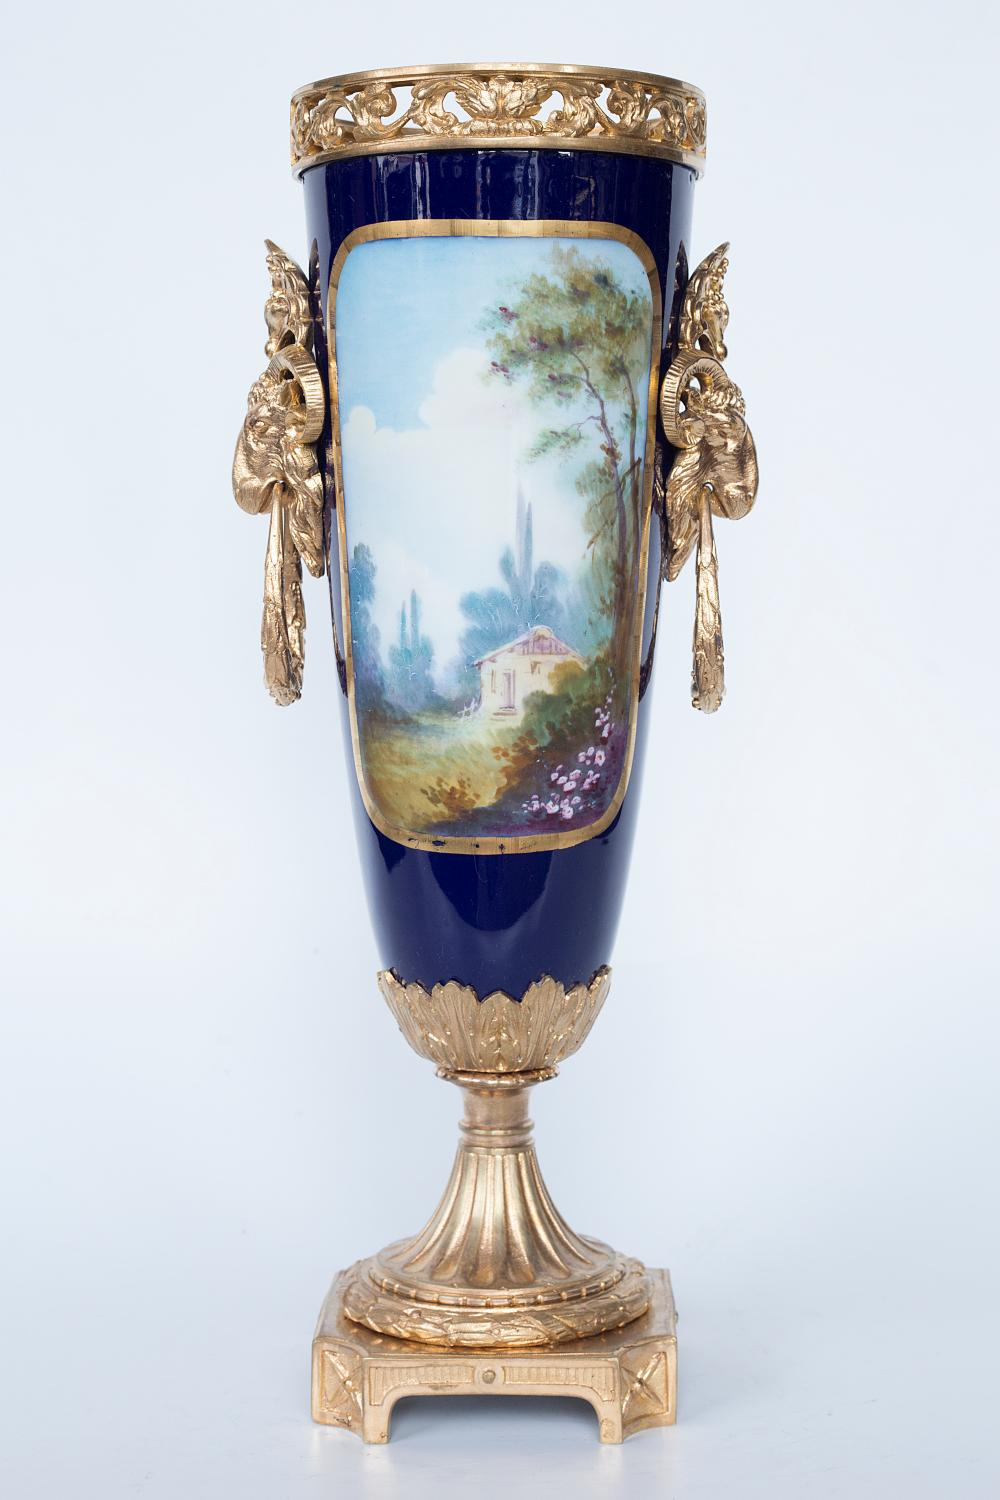 Authentic Sevres gilt bronze mounted hand painted porcelain vase